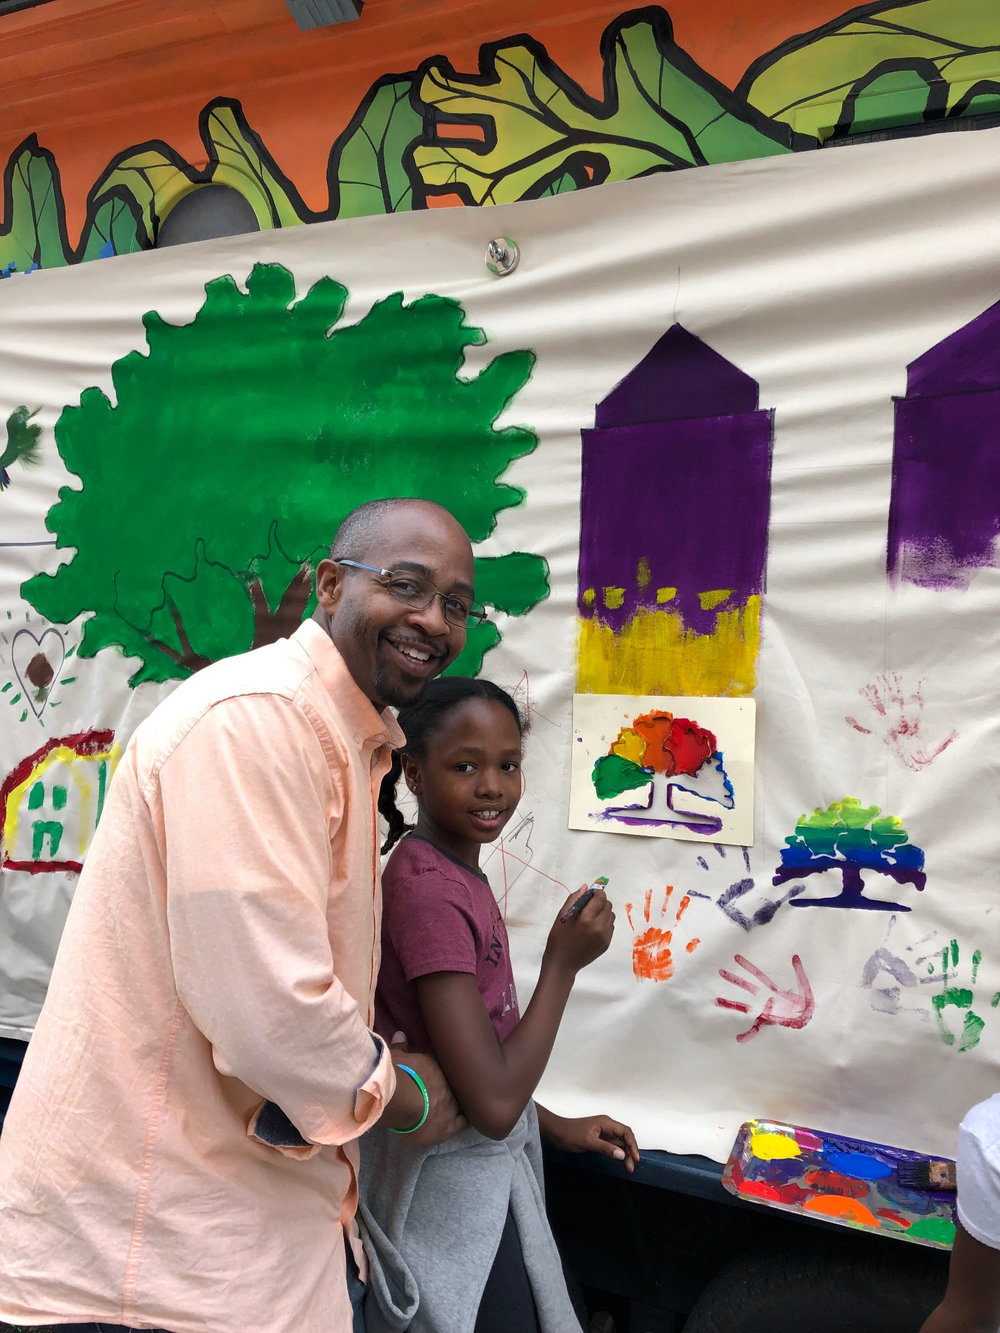 Pictured is newly-elected Council Member Loren Taylor assisting his daughter's fine stencil work.